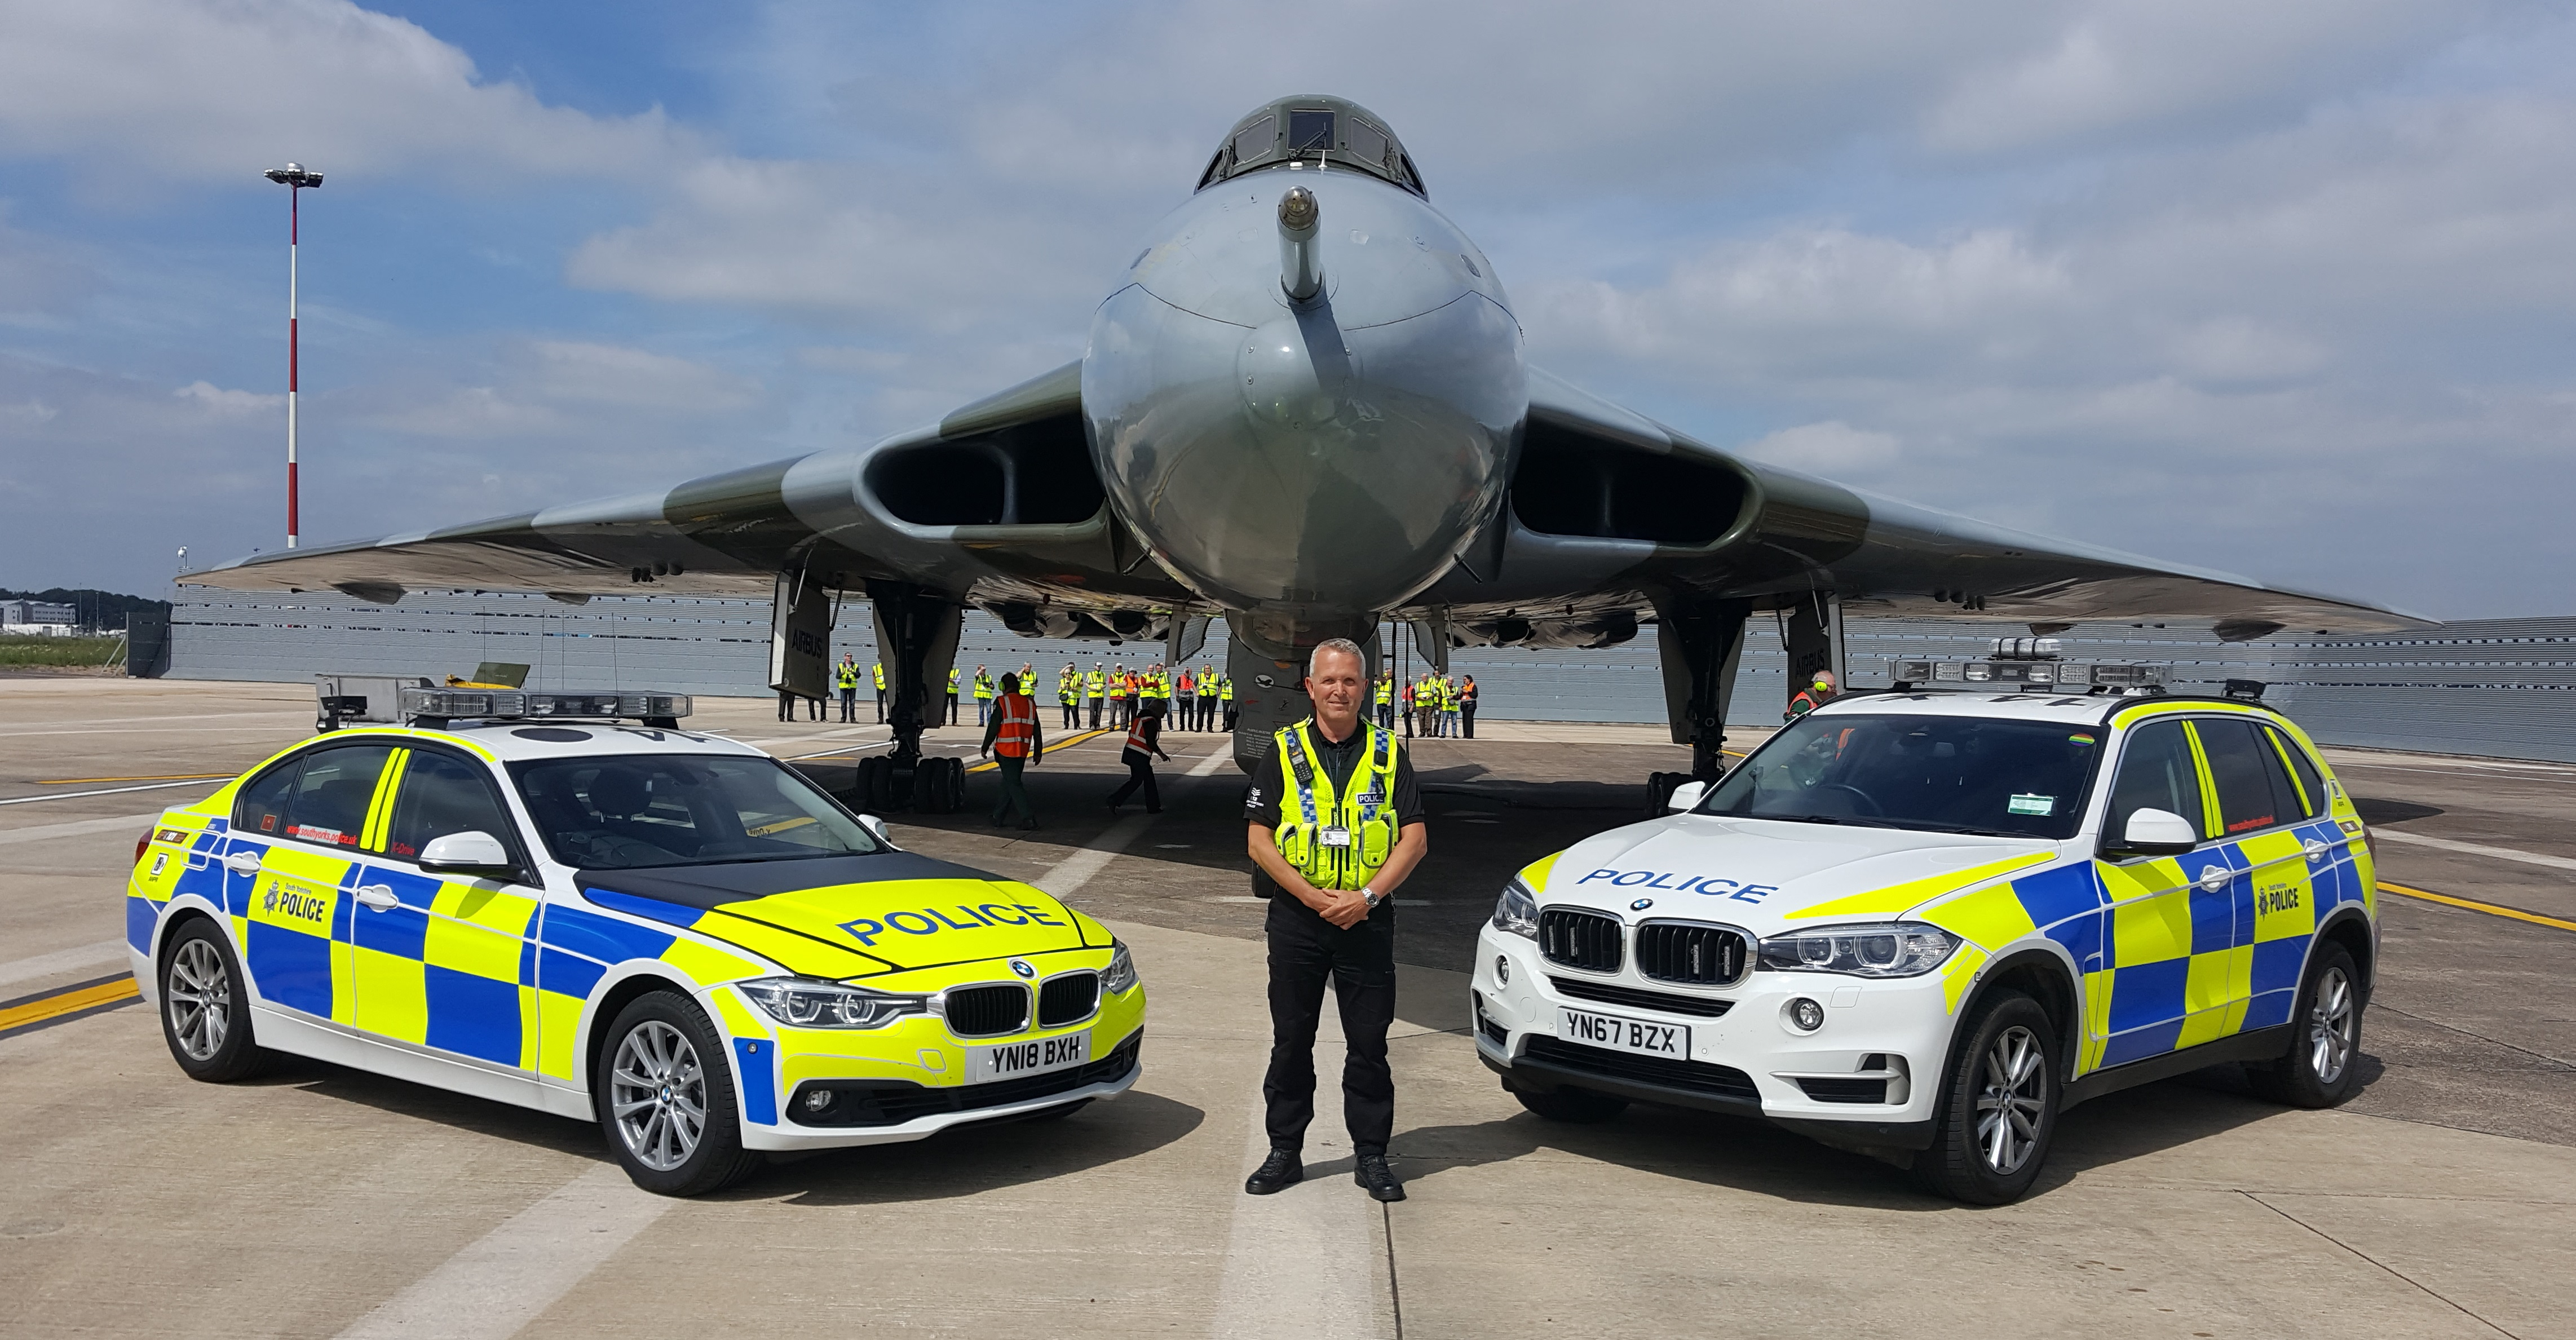 Sergeant Andy Whittaker at Doncaster Sheffield Airport